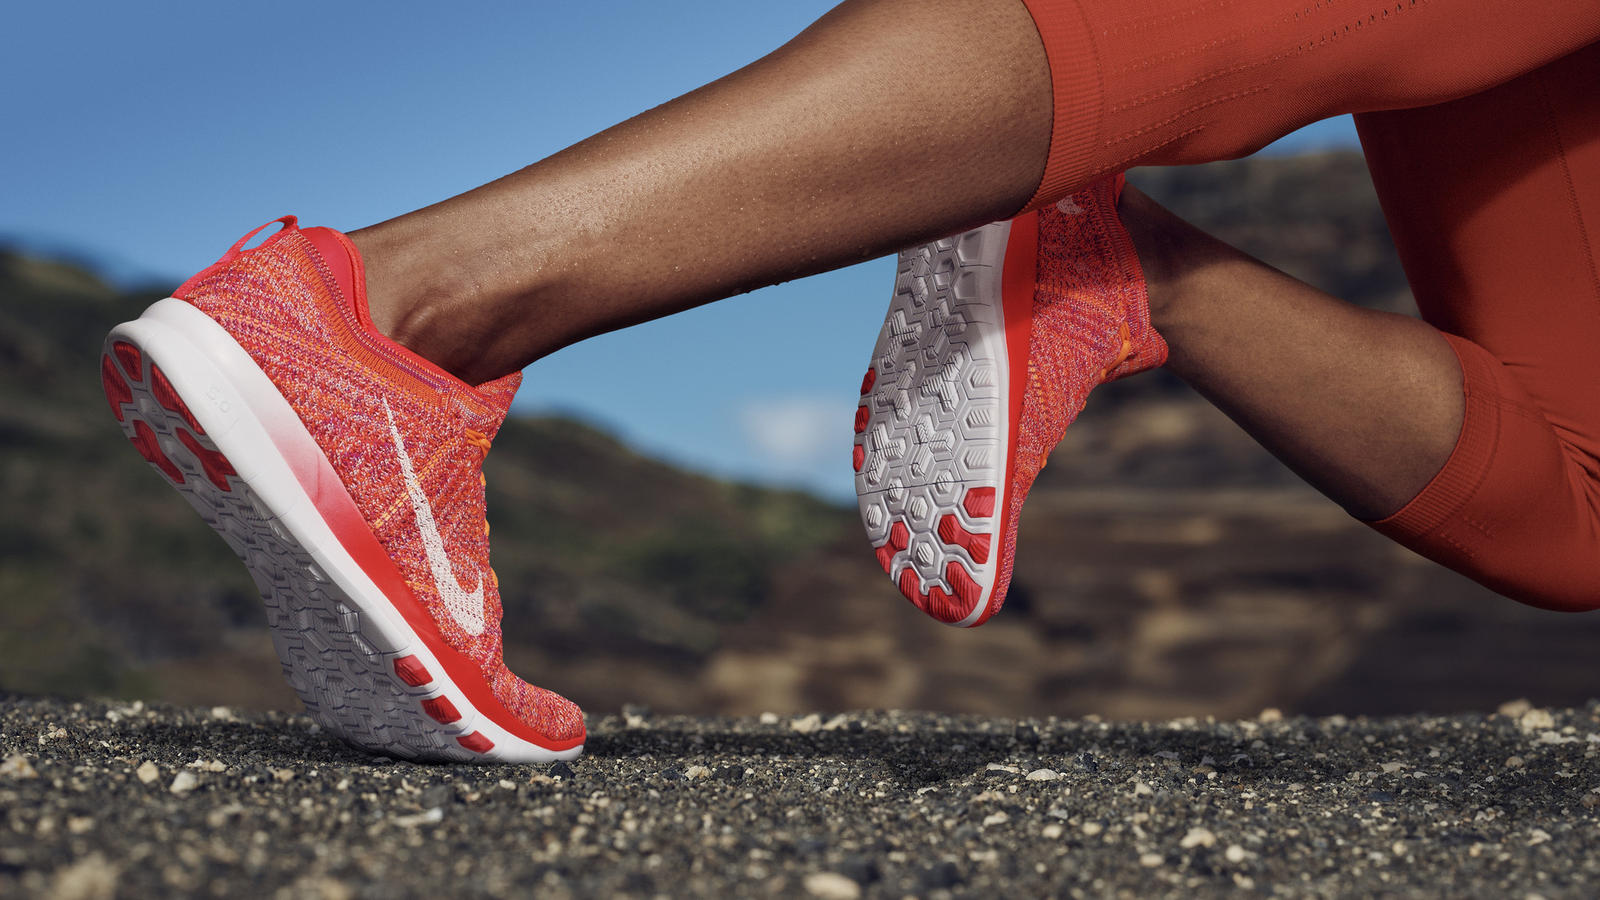 Nike Free Tr 5 Flyknit Fit For Training Nike News